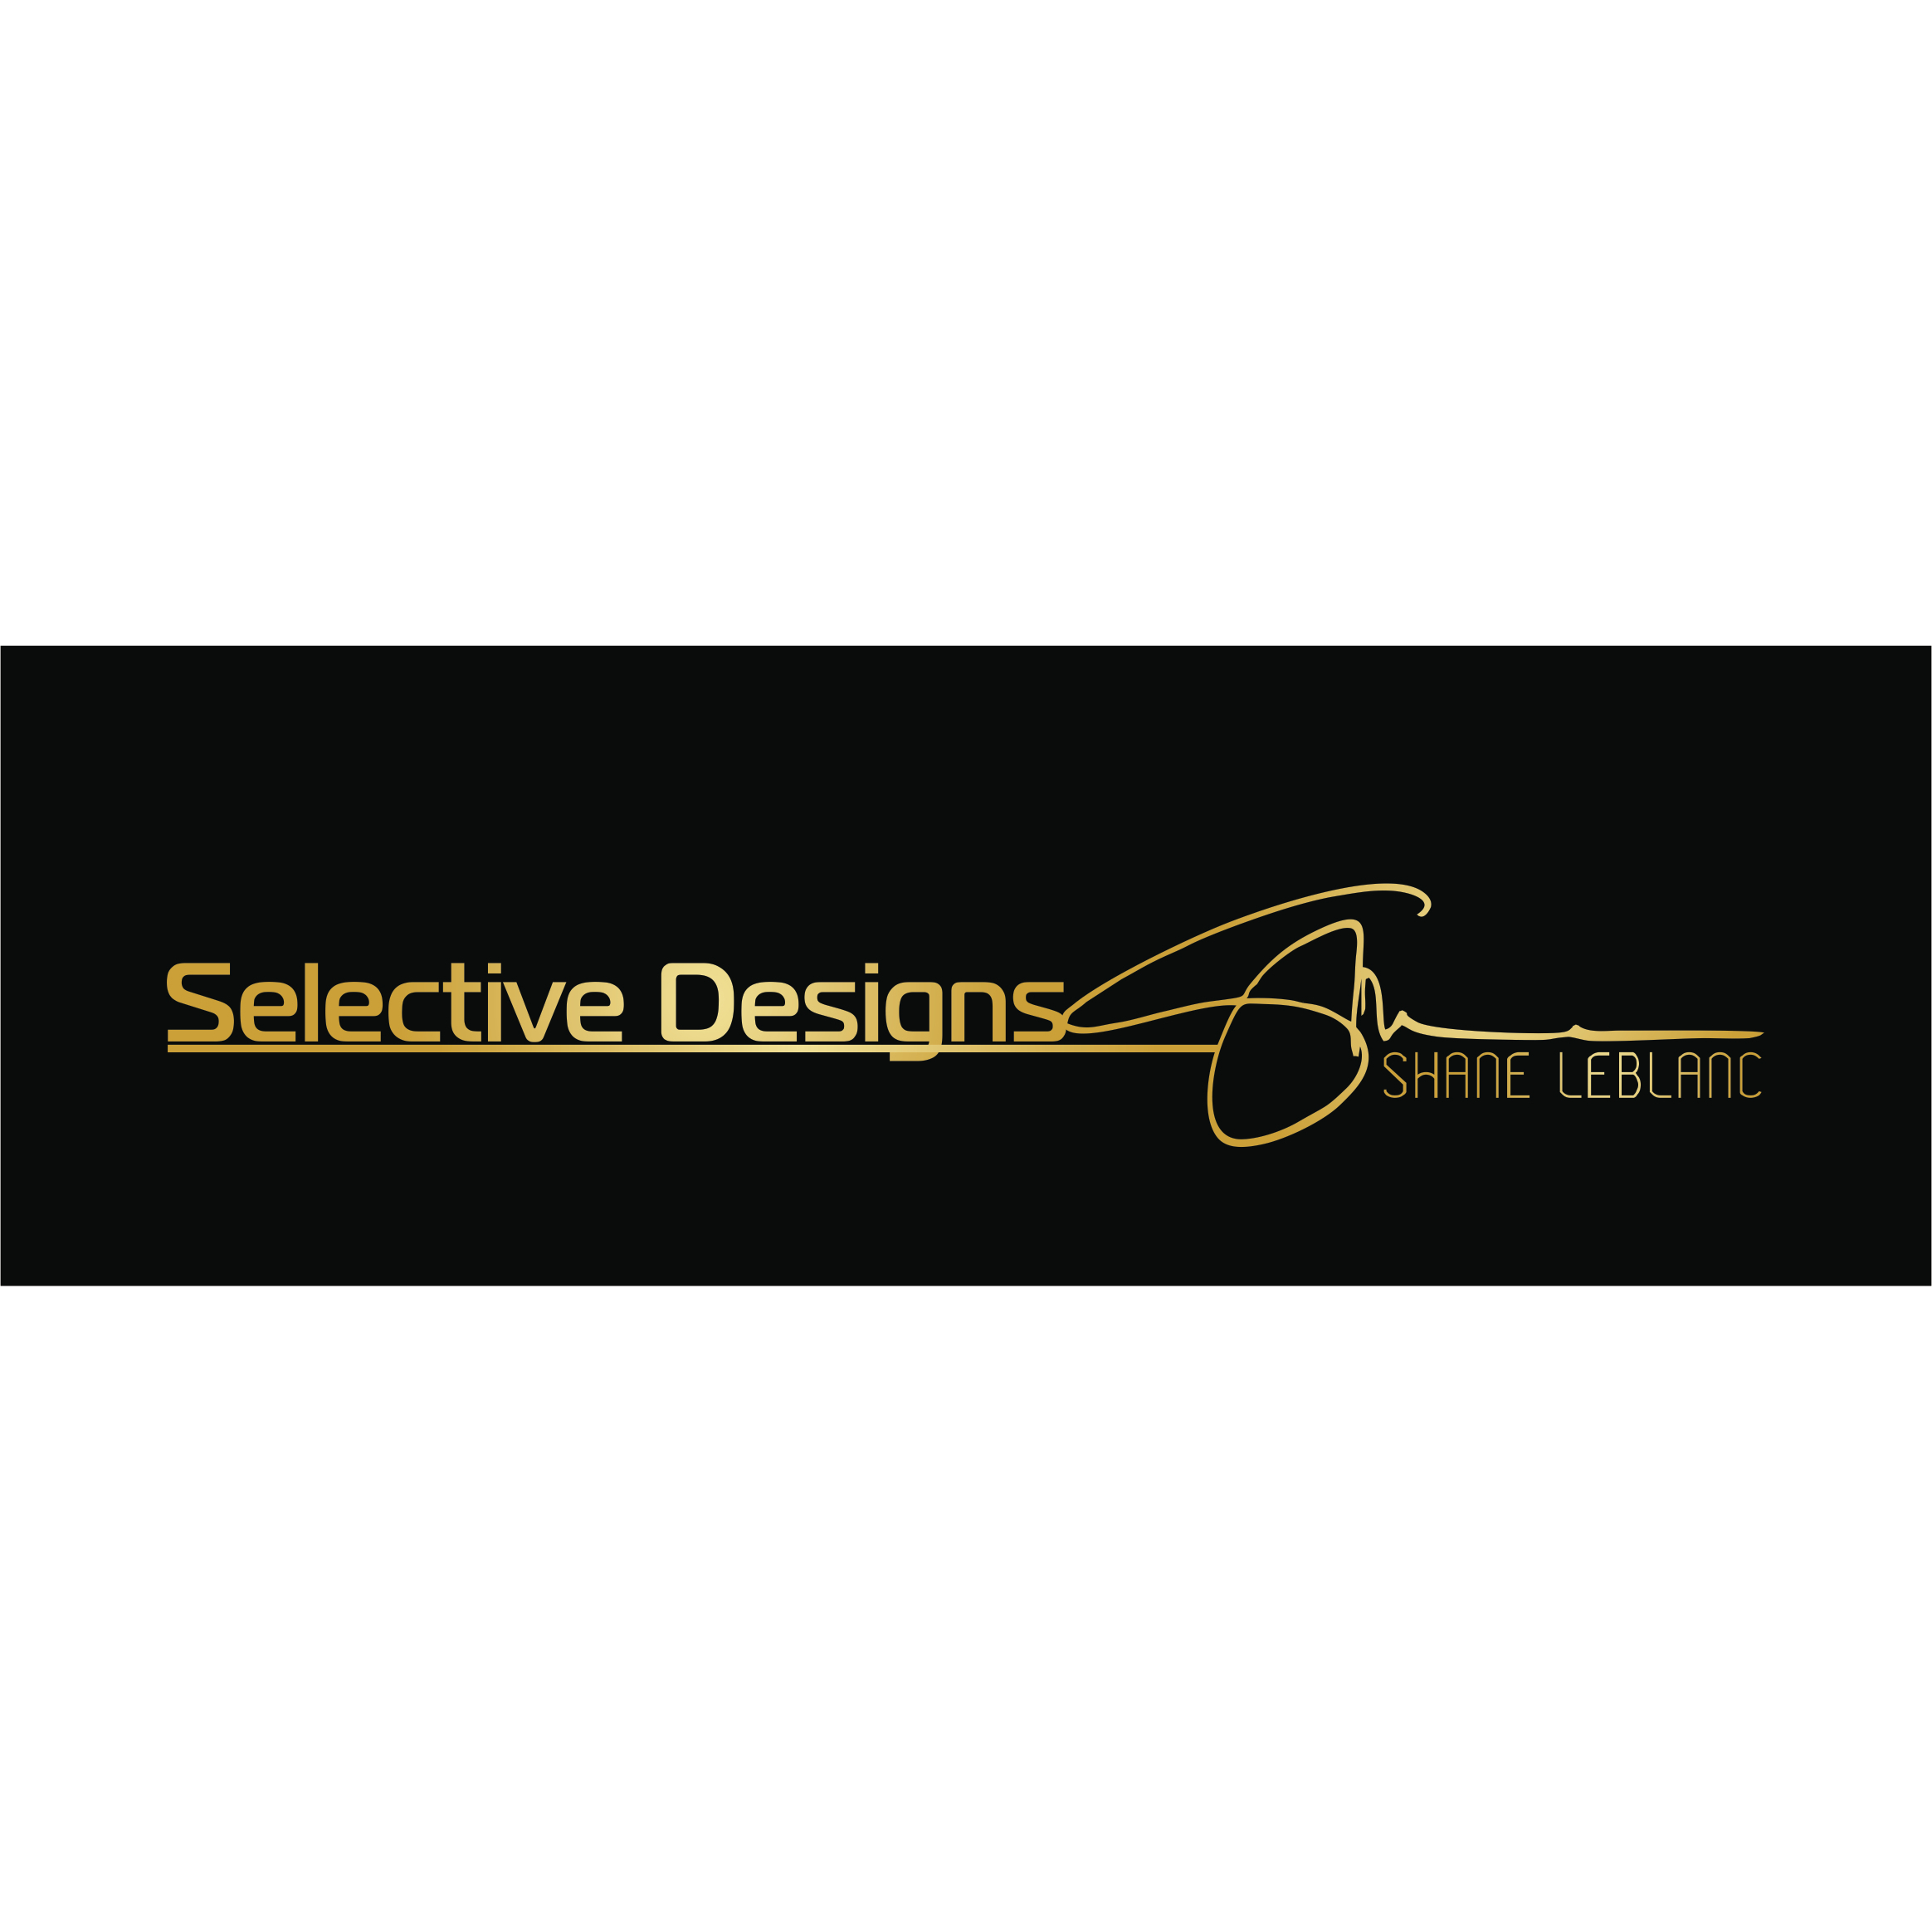 Selective Designs